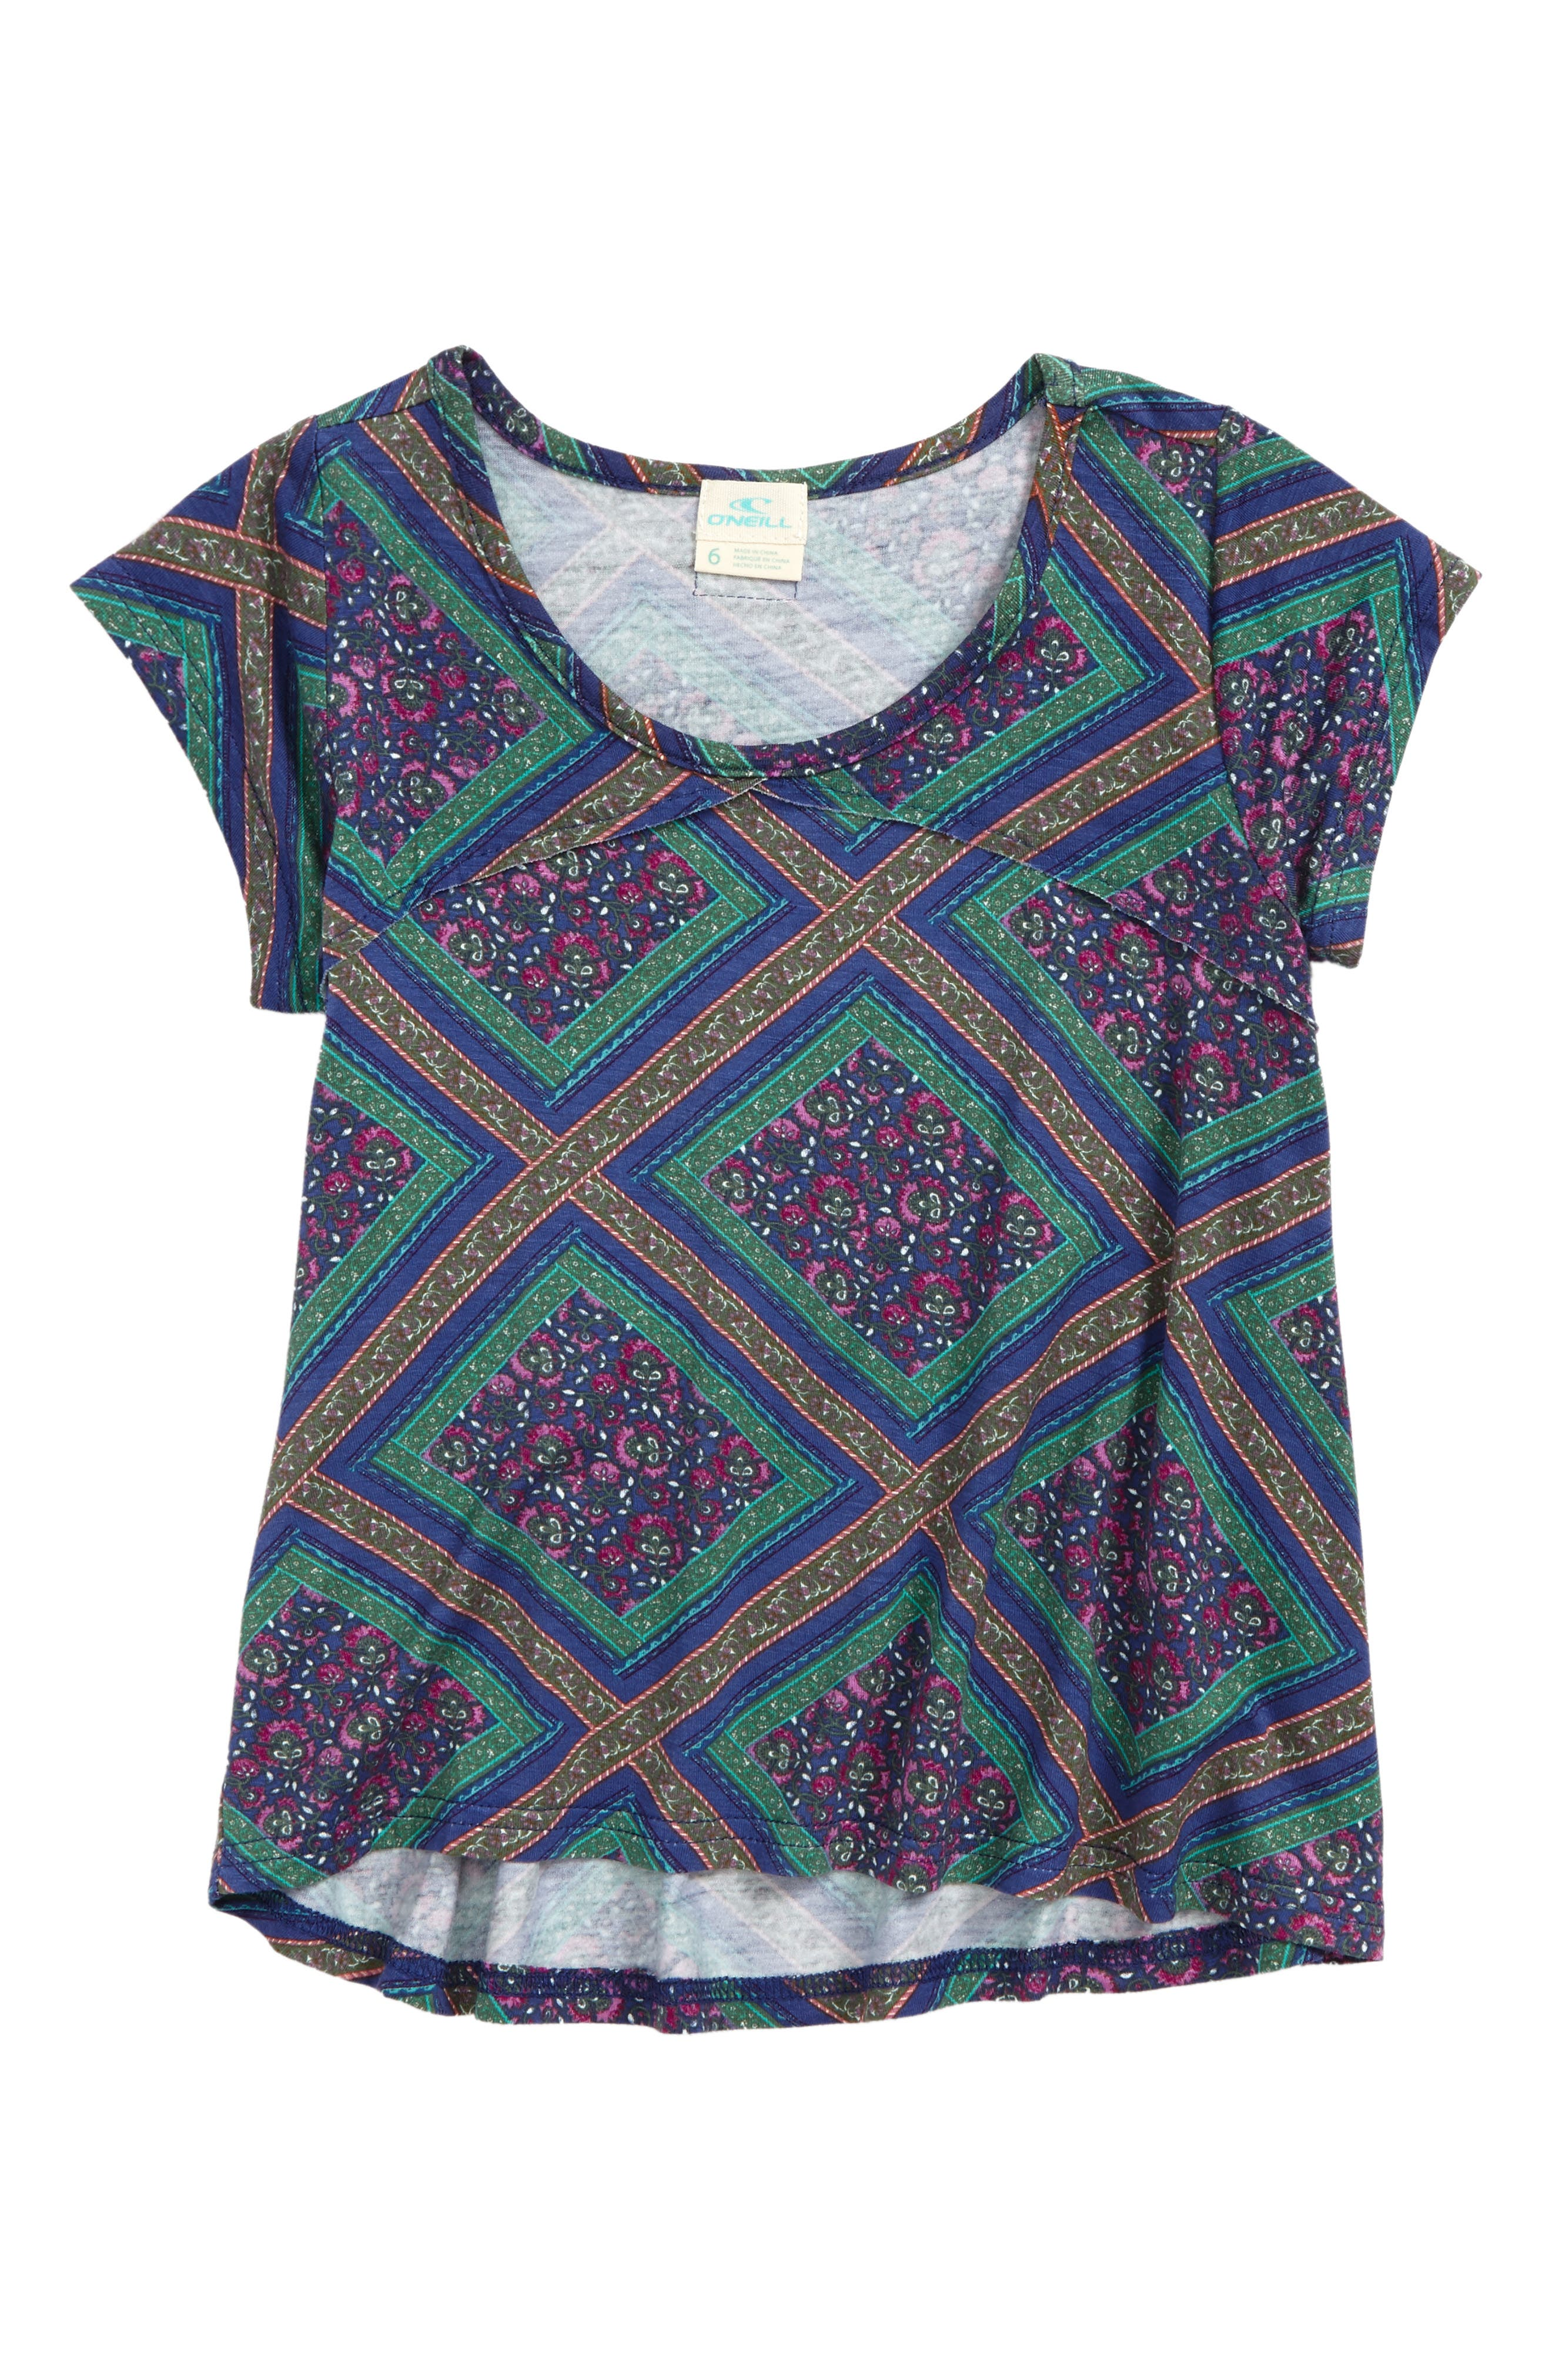 Main Image - O'Neill Emery Knit Top (Toddler Girls & Little Girls)